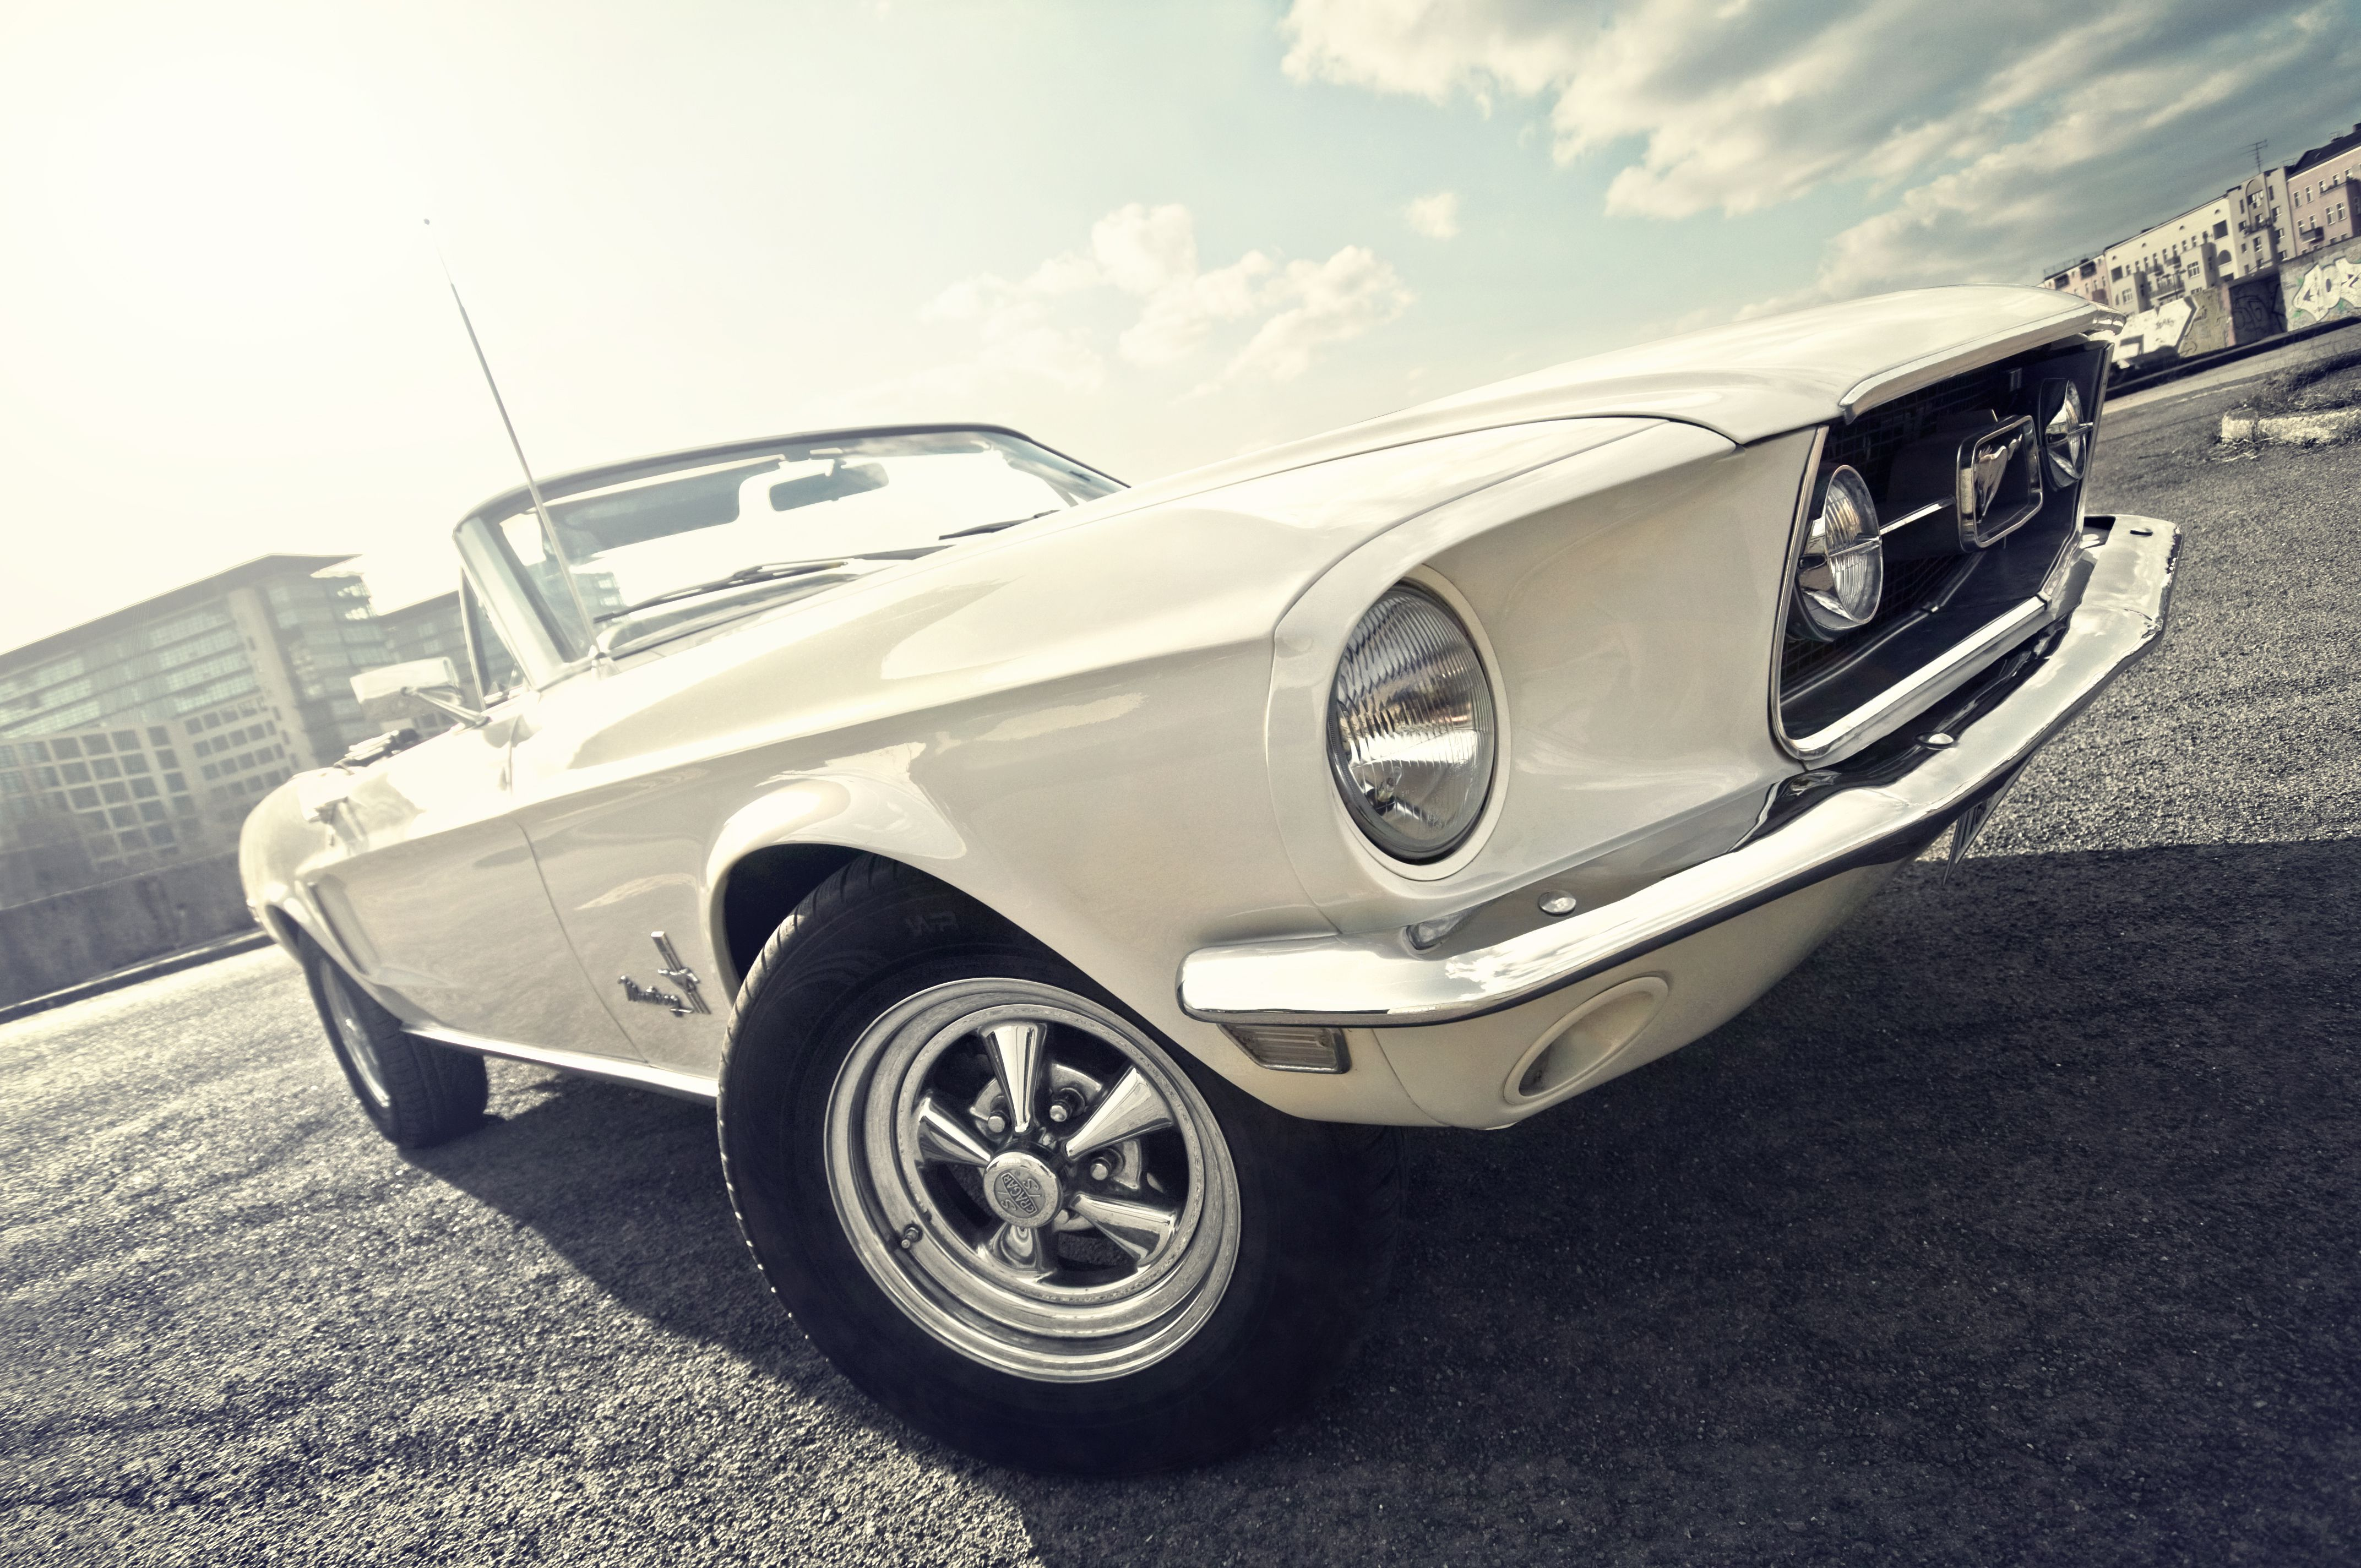 1968 Ford Mustang Model Year Profile